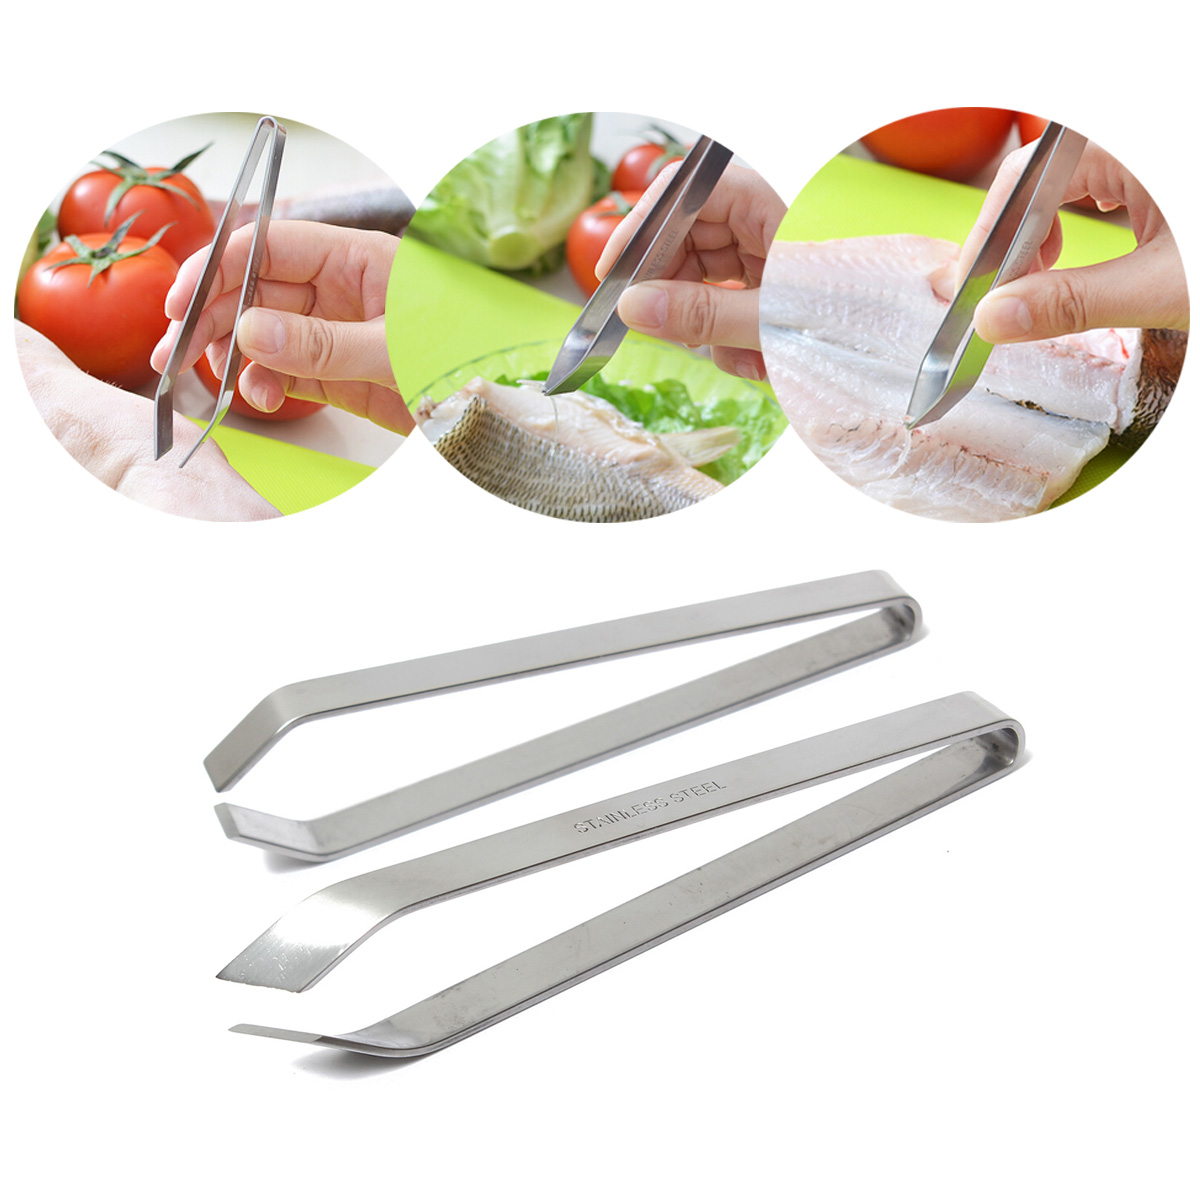 Stainless Steel Fish Bone Remover Pincer Puller Tweezer Tongs Pick-Up Tool Craft Home Kitchen Gadget SKU264757